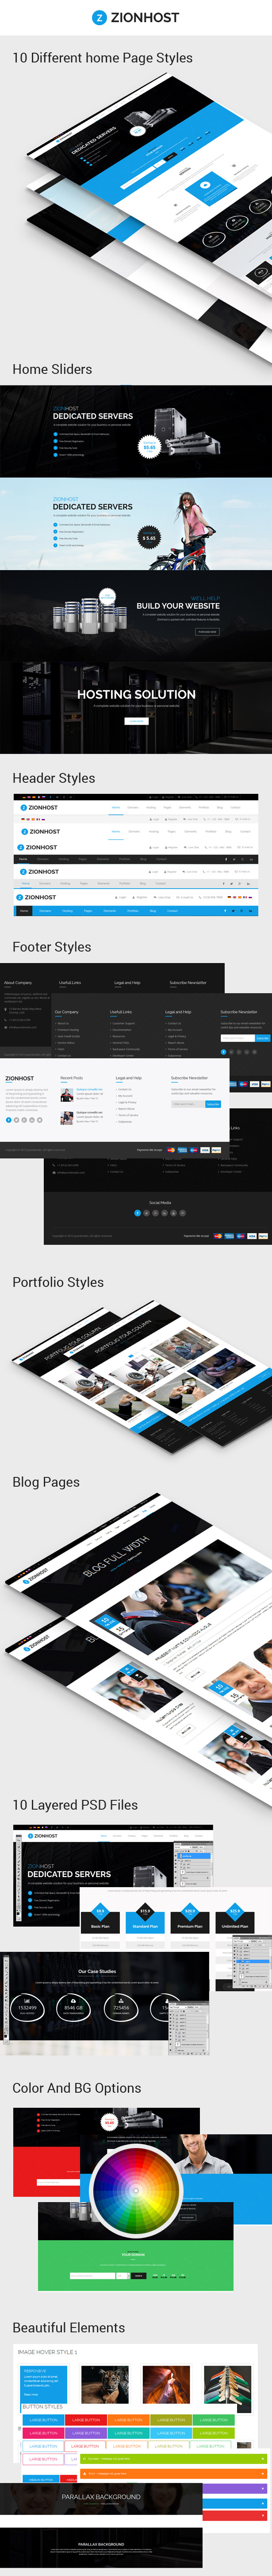 ZionHost - Web Hosting, Responsive HTML5 Template